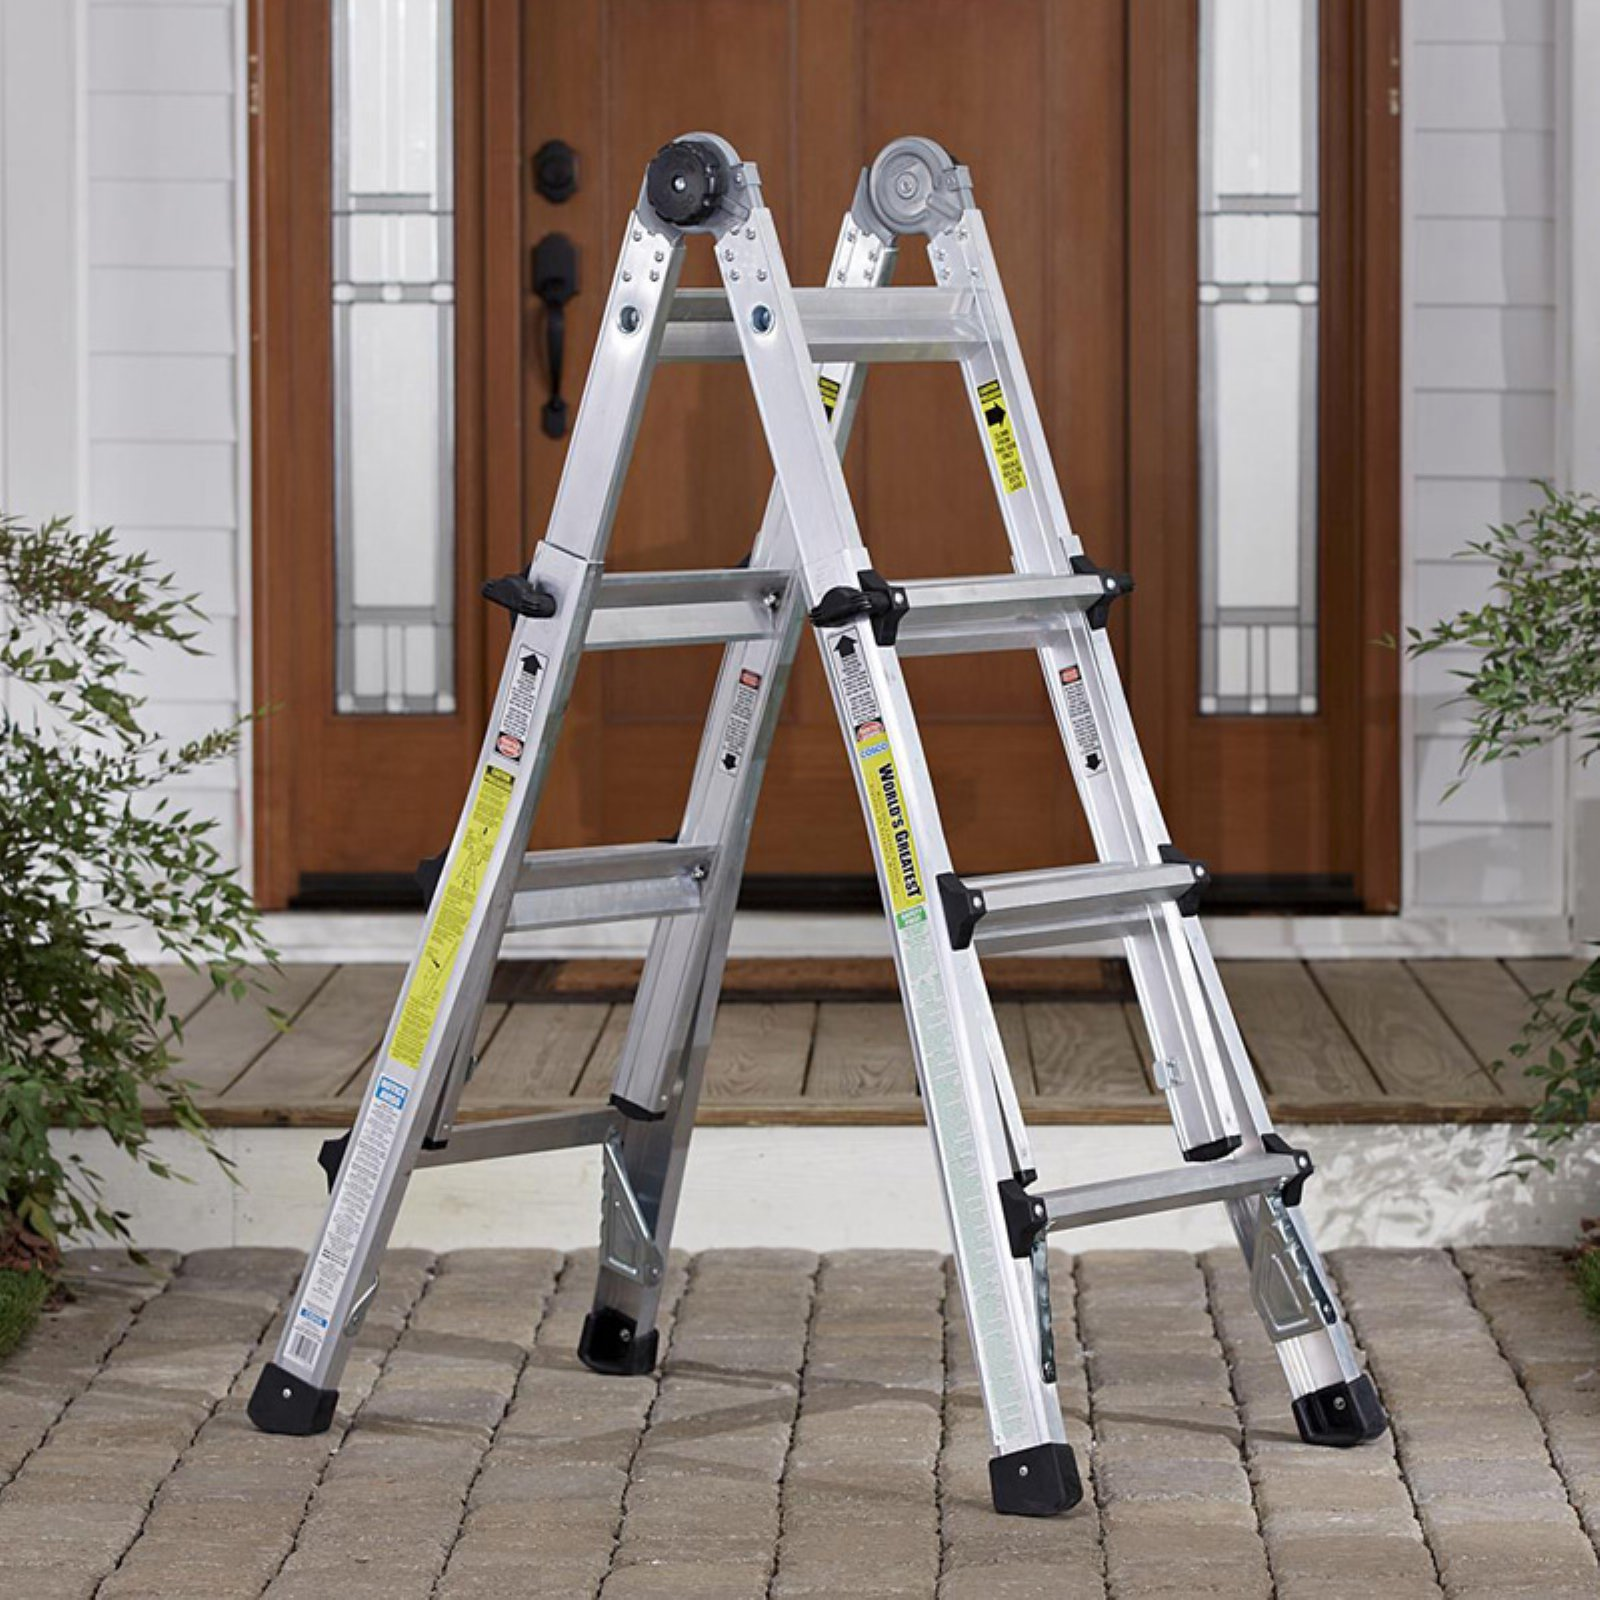 Cosco 13' Multi-Position Ladder System by Cosco